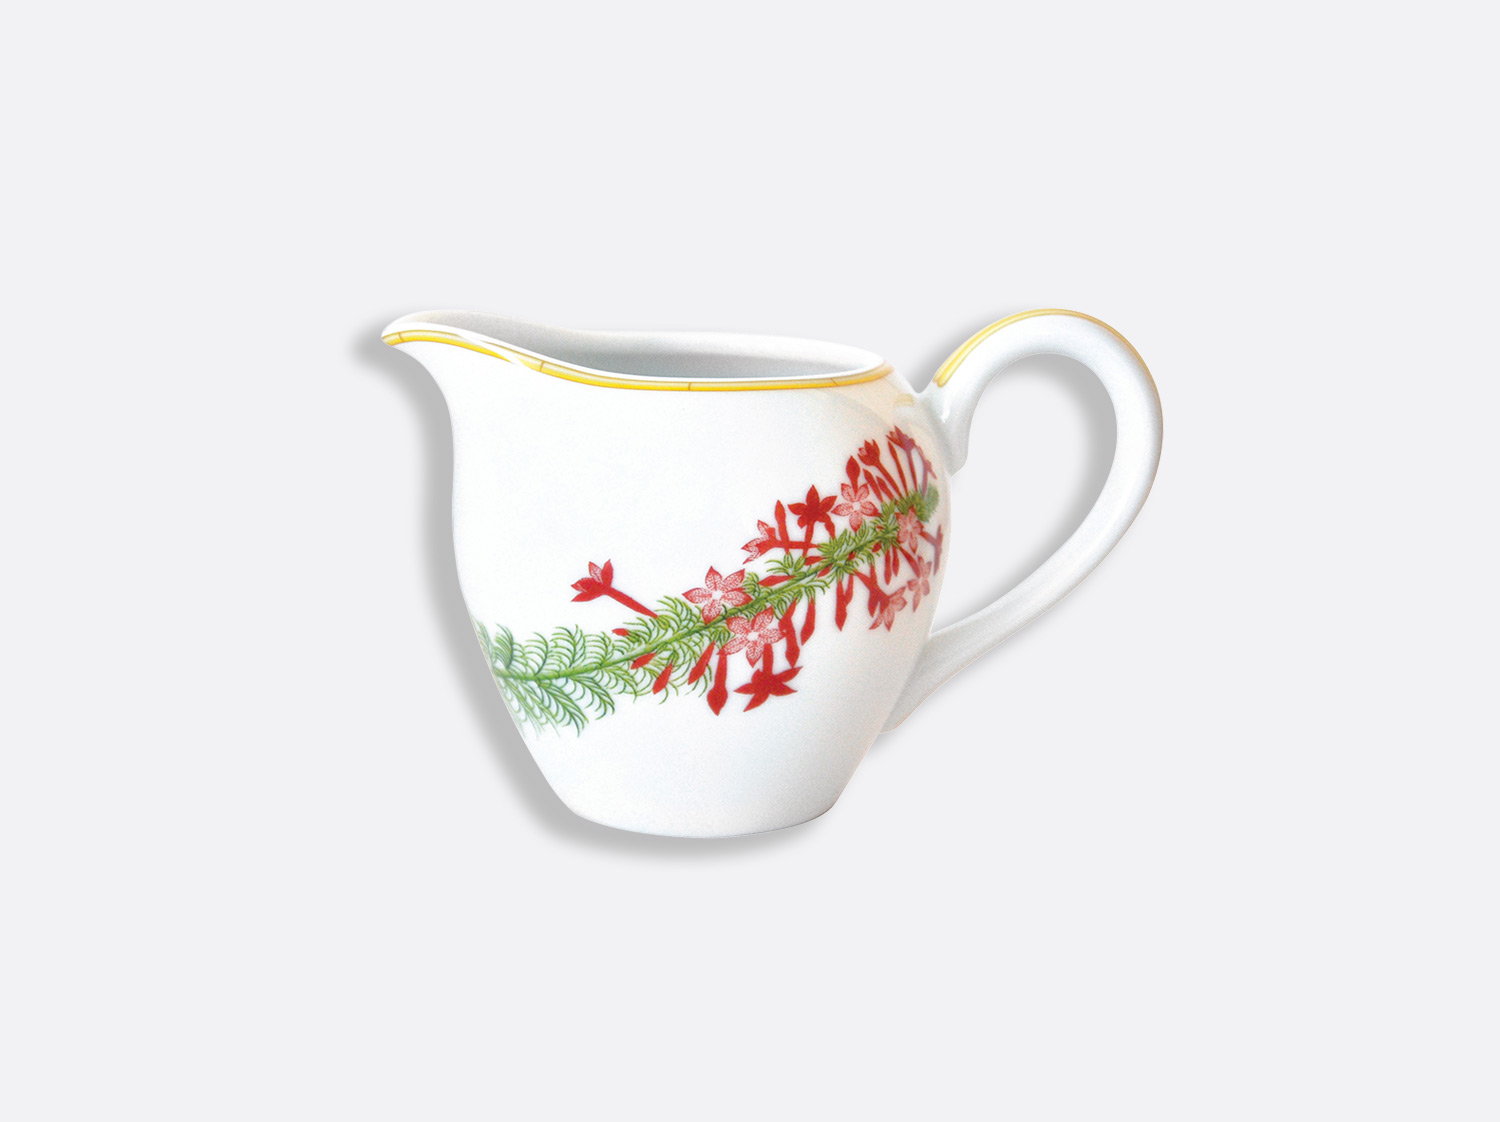 Crémier 12 tasses 30 cl en porcelaine de la collection Jardin indien Bernardaud